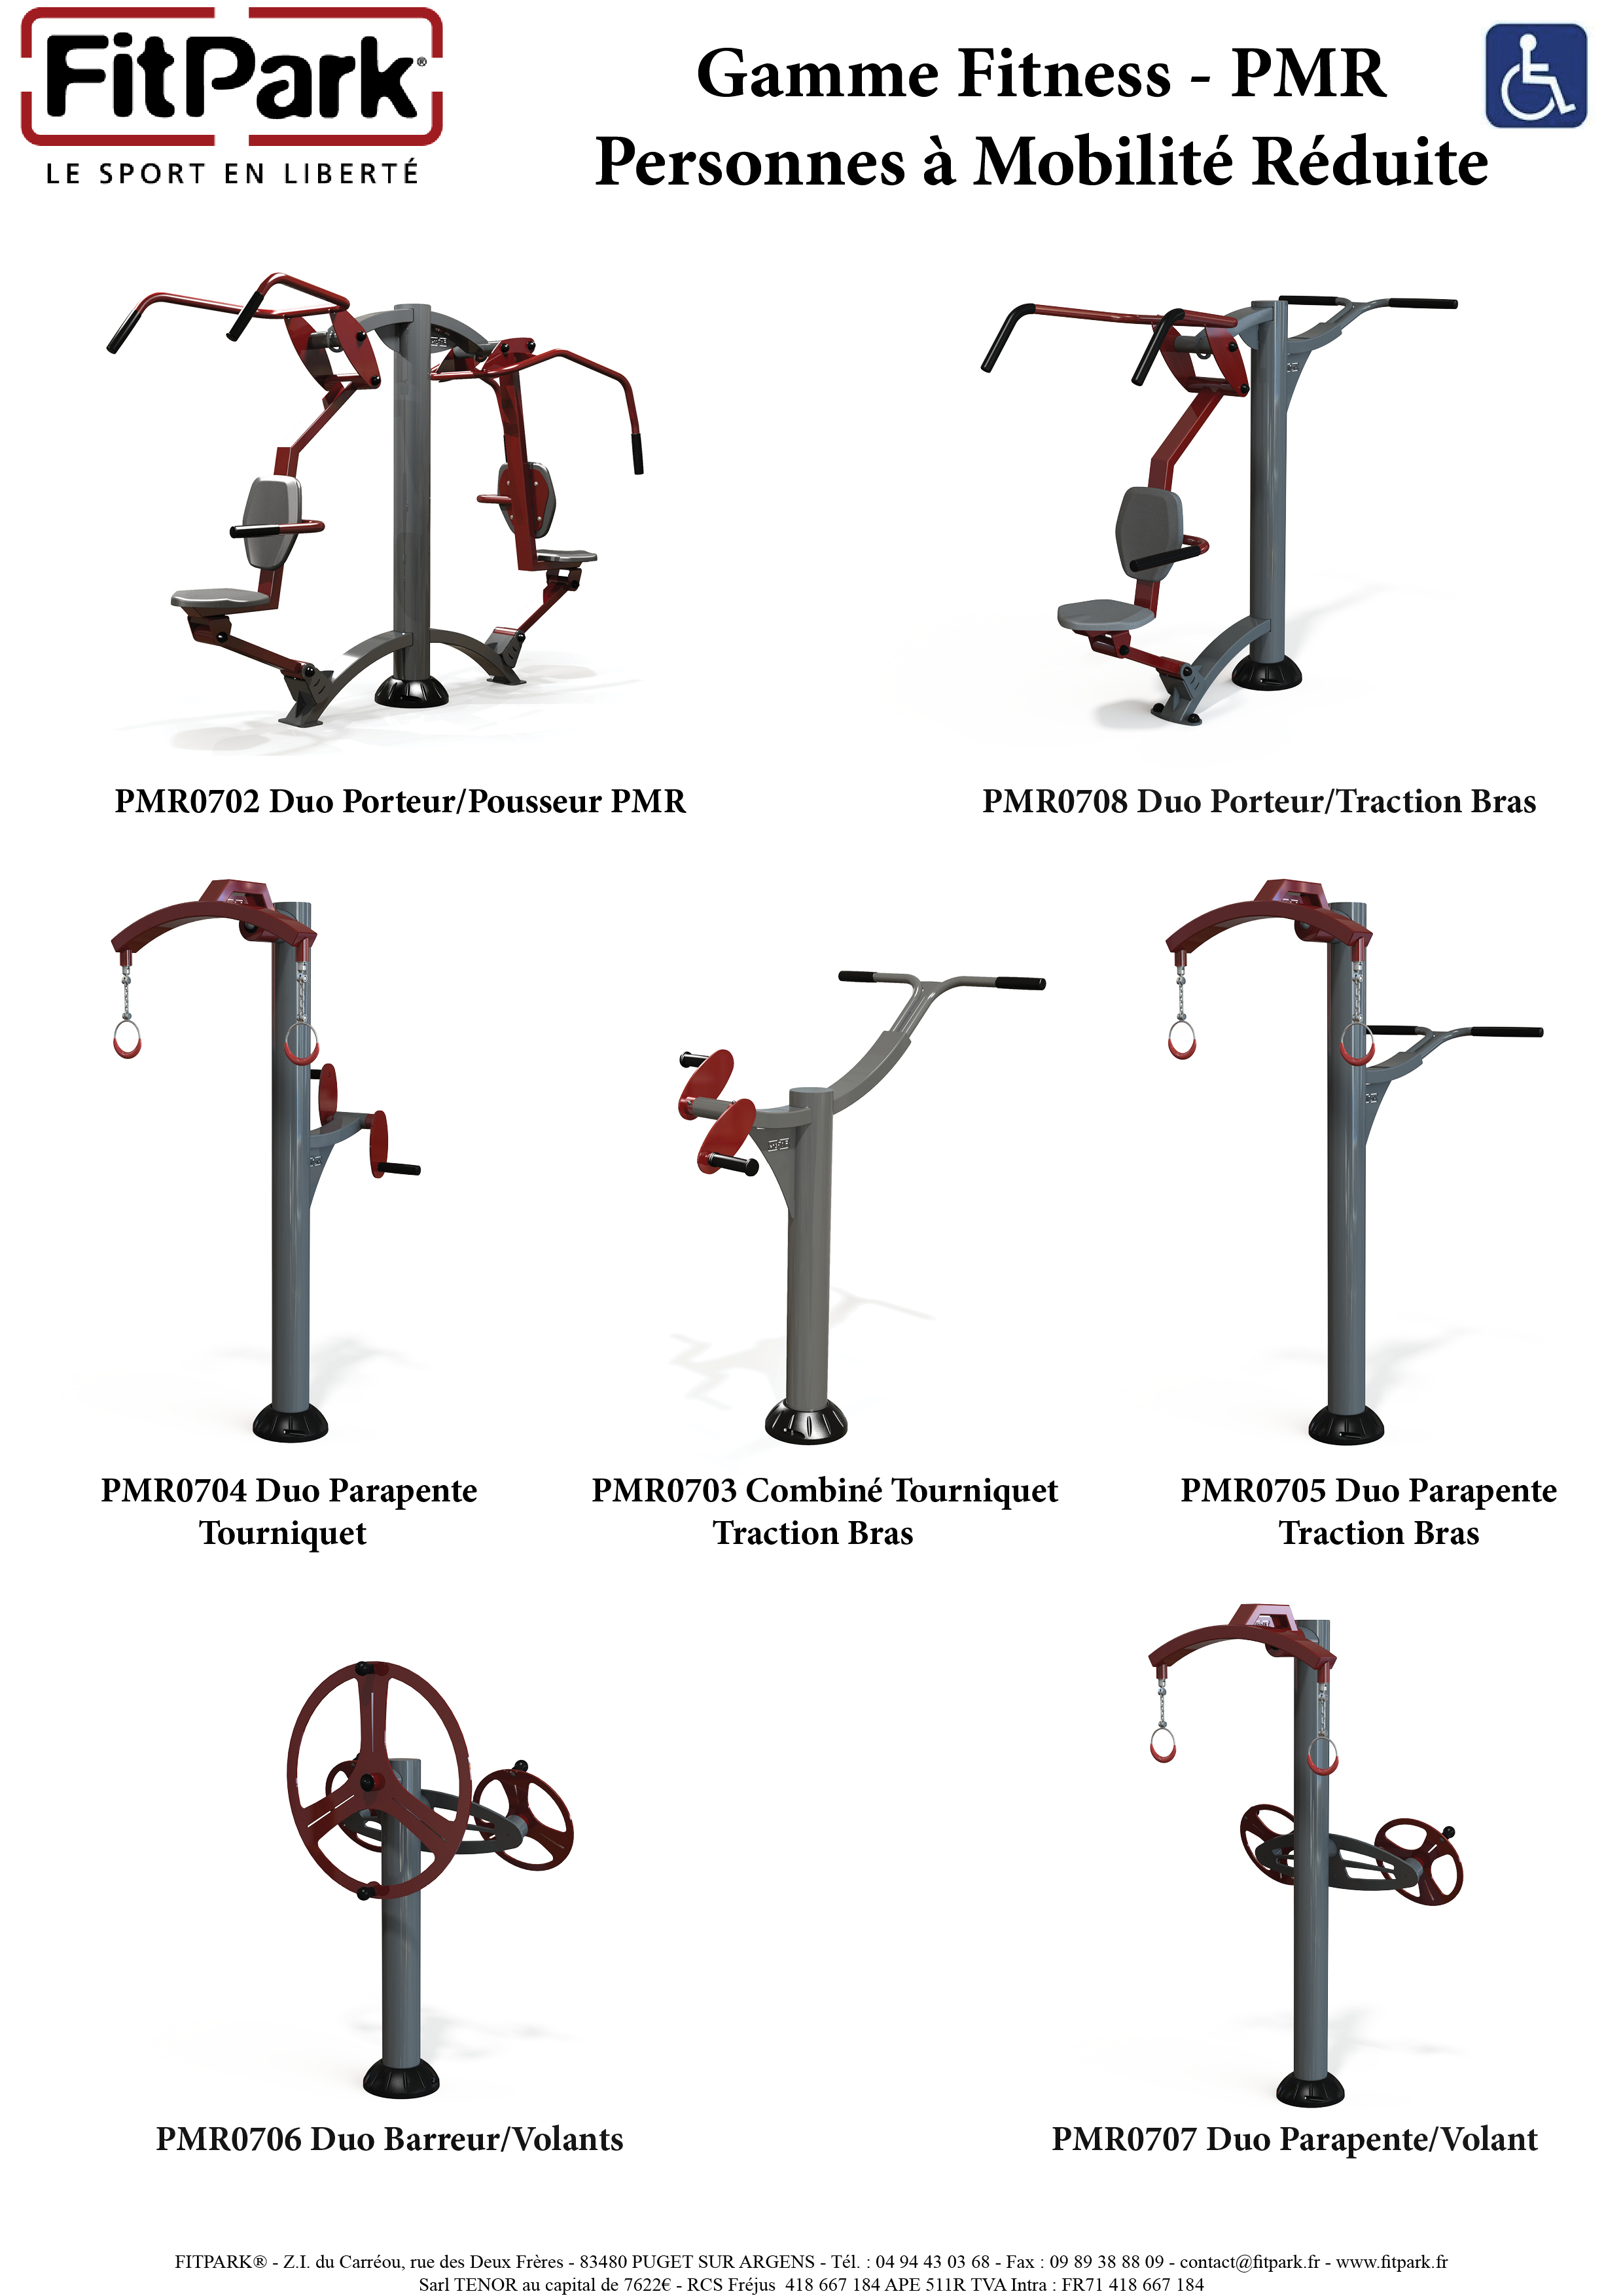 Fitpark gamme fitness - PMR